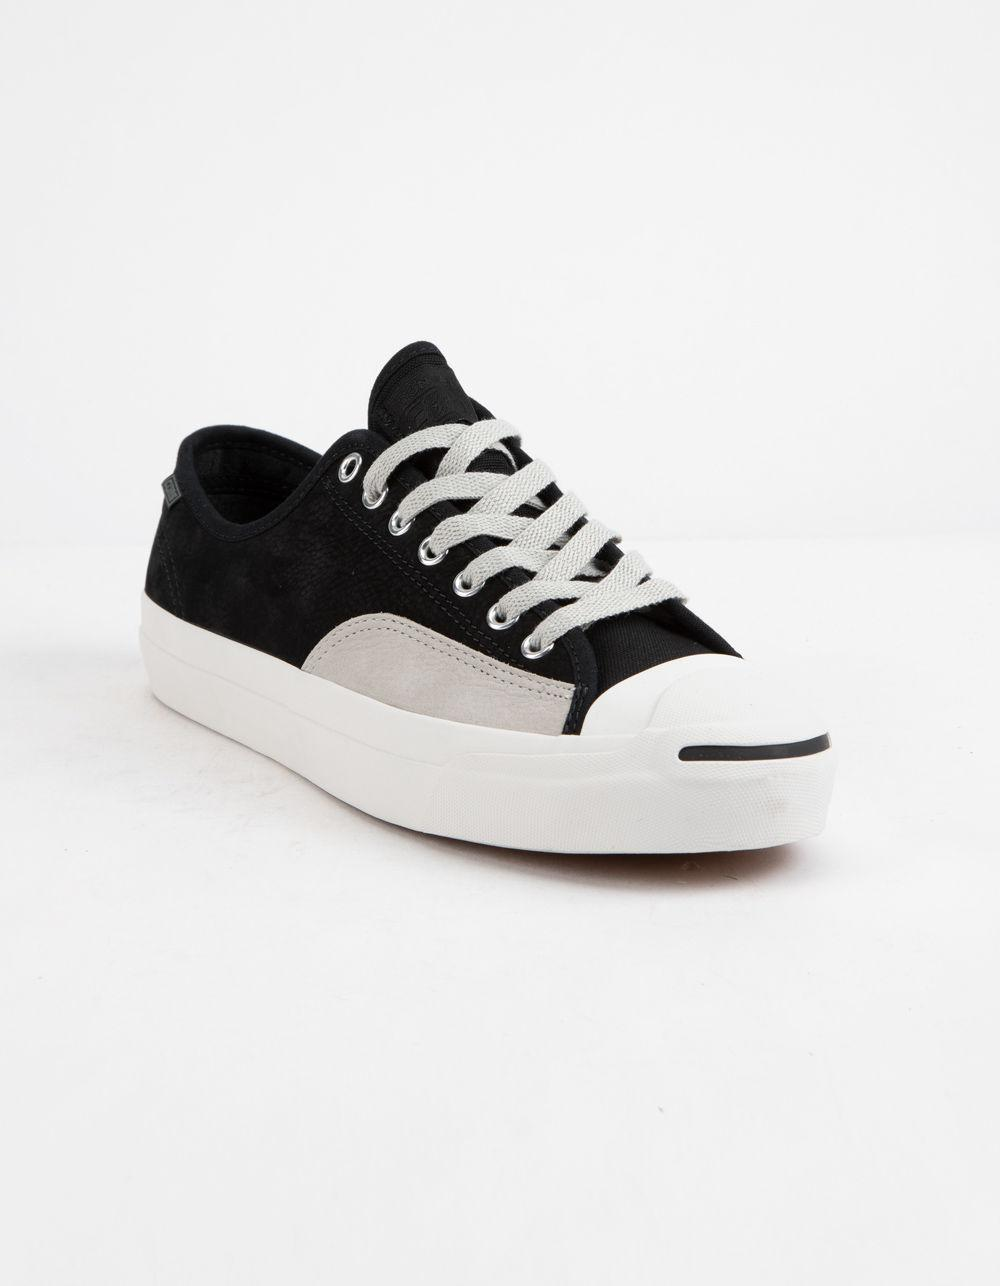 1f55196244773b Lyst - Converse Jack Purcell Pro Leather Low Top Shoes in Black